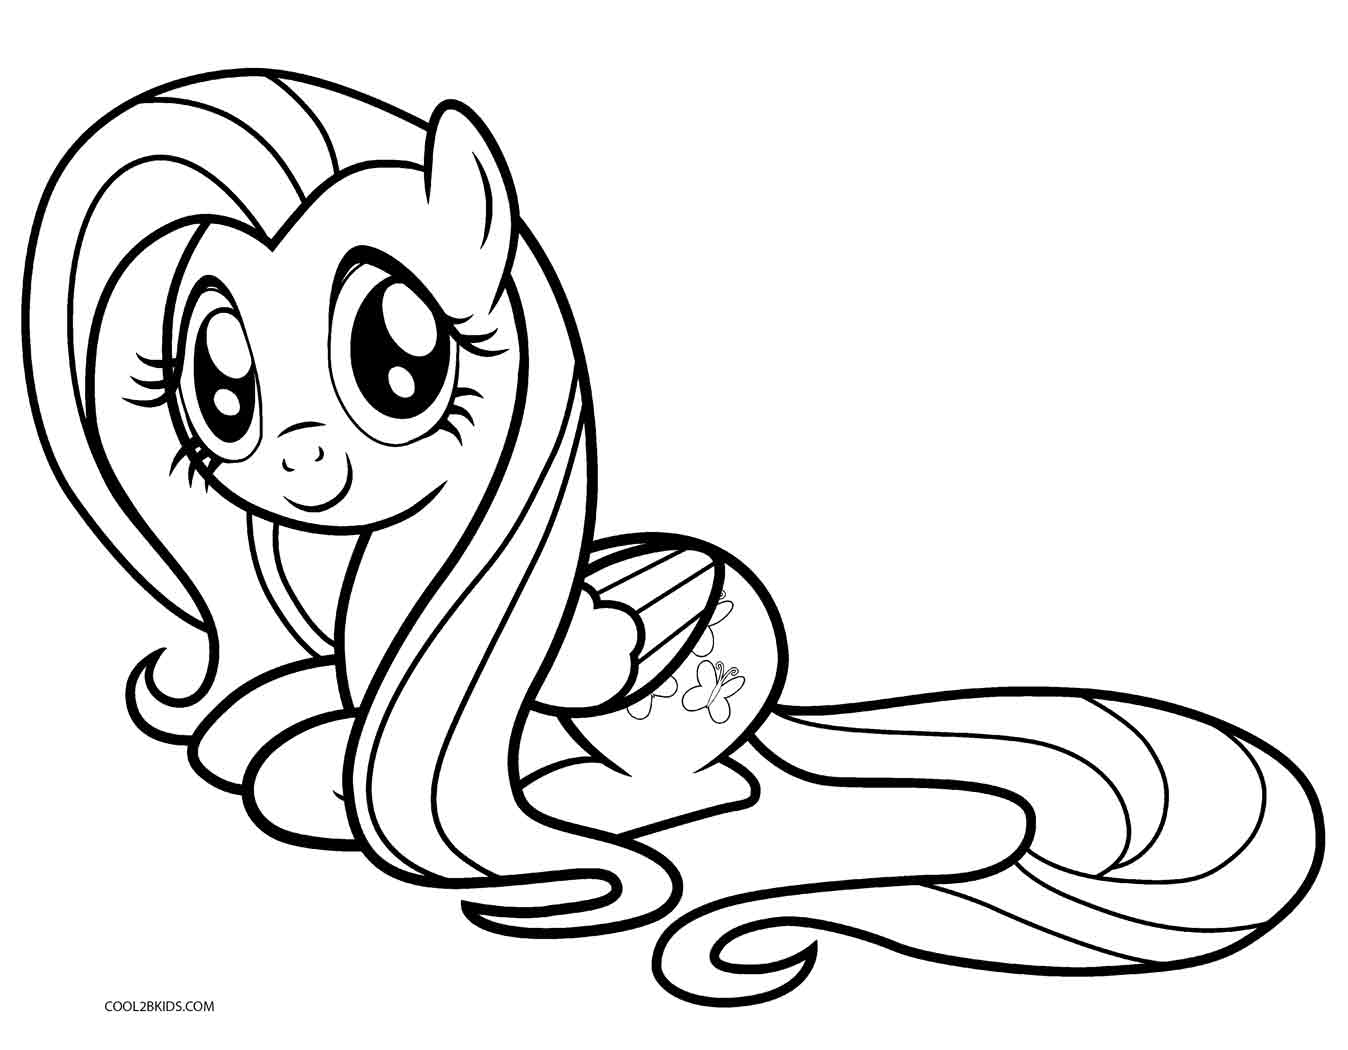 my little pony print out coloring pages free printable my little pony coloring pages for kids pages pony out print little my coloring